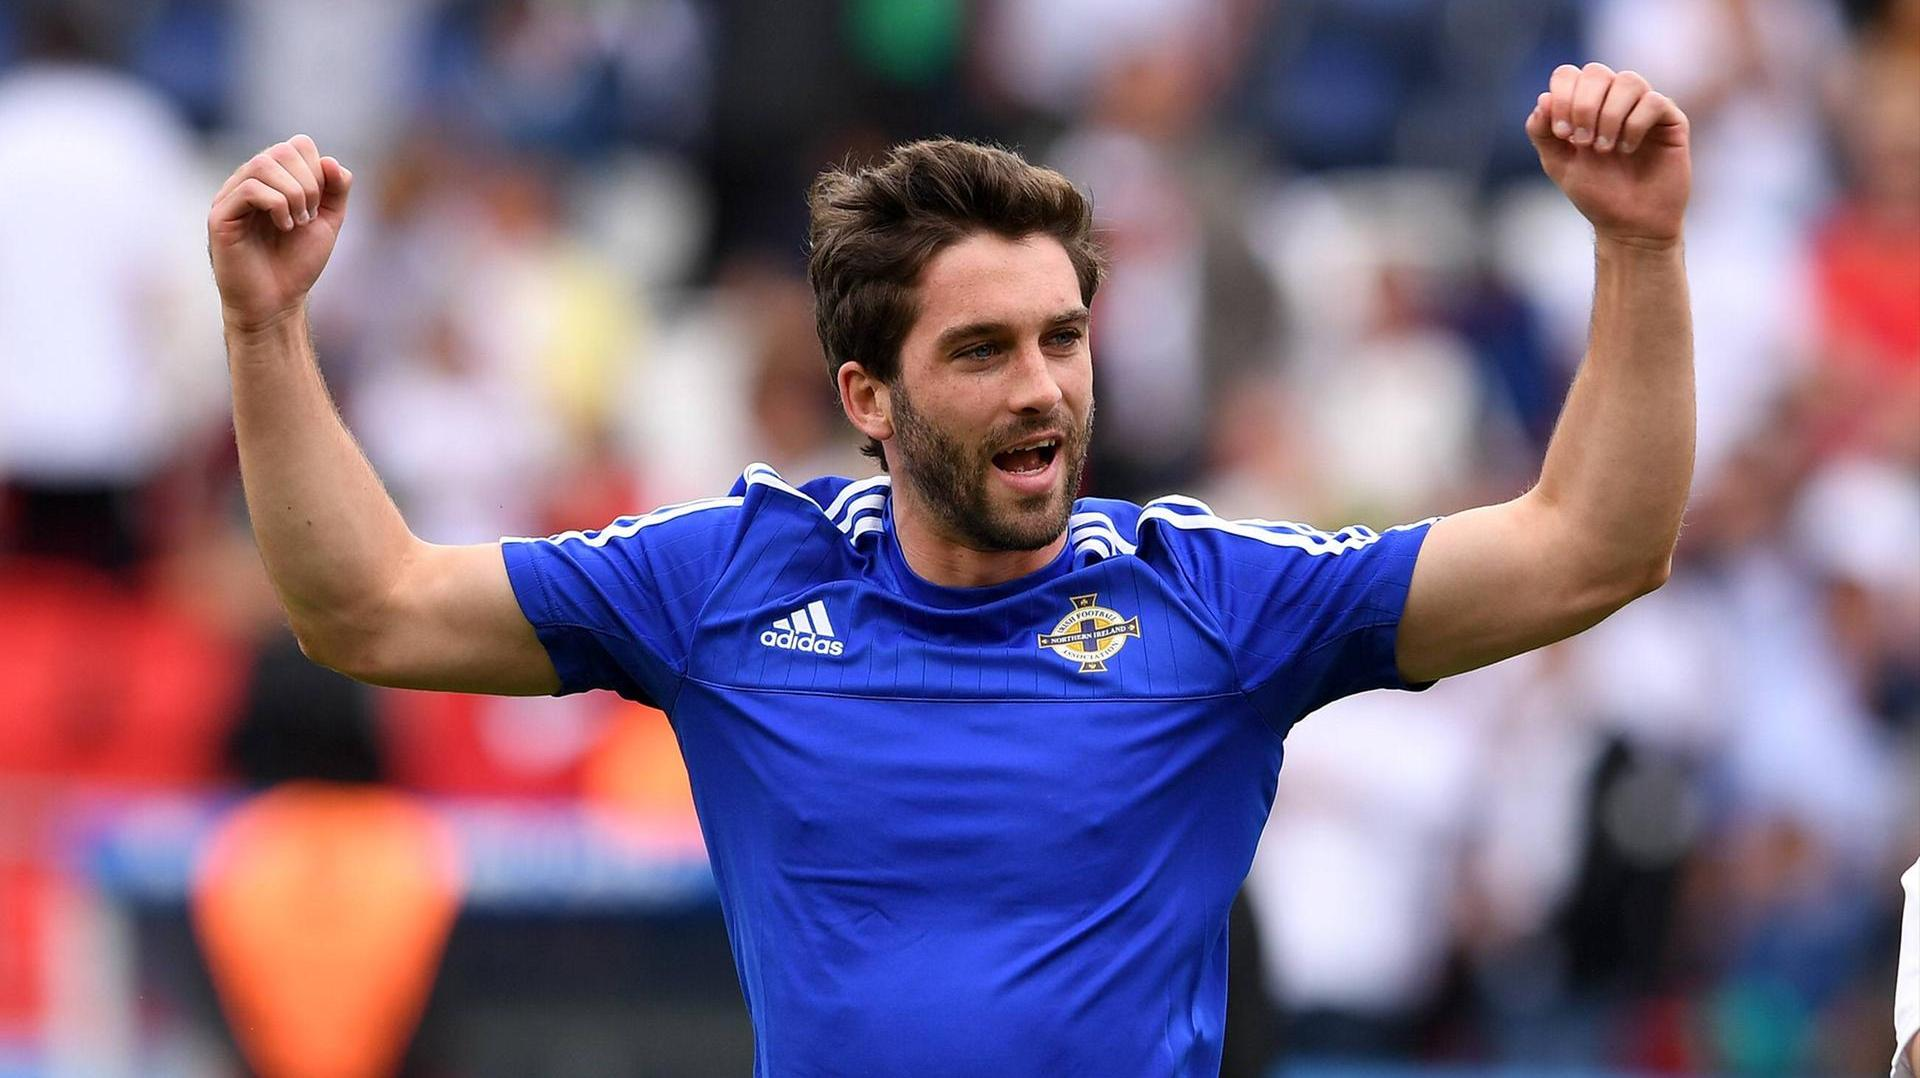 will grigg hsv